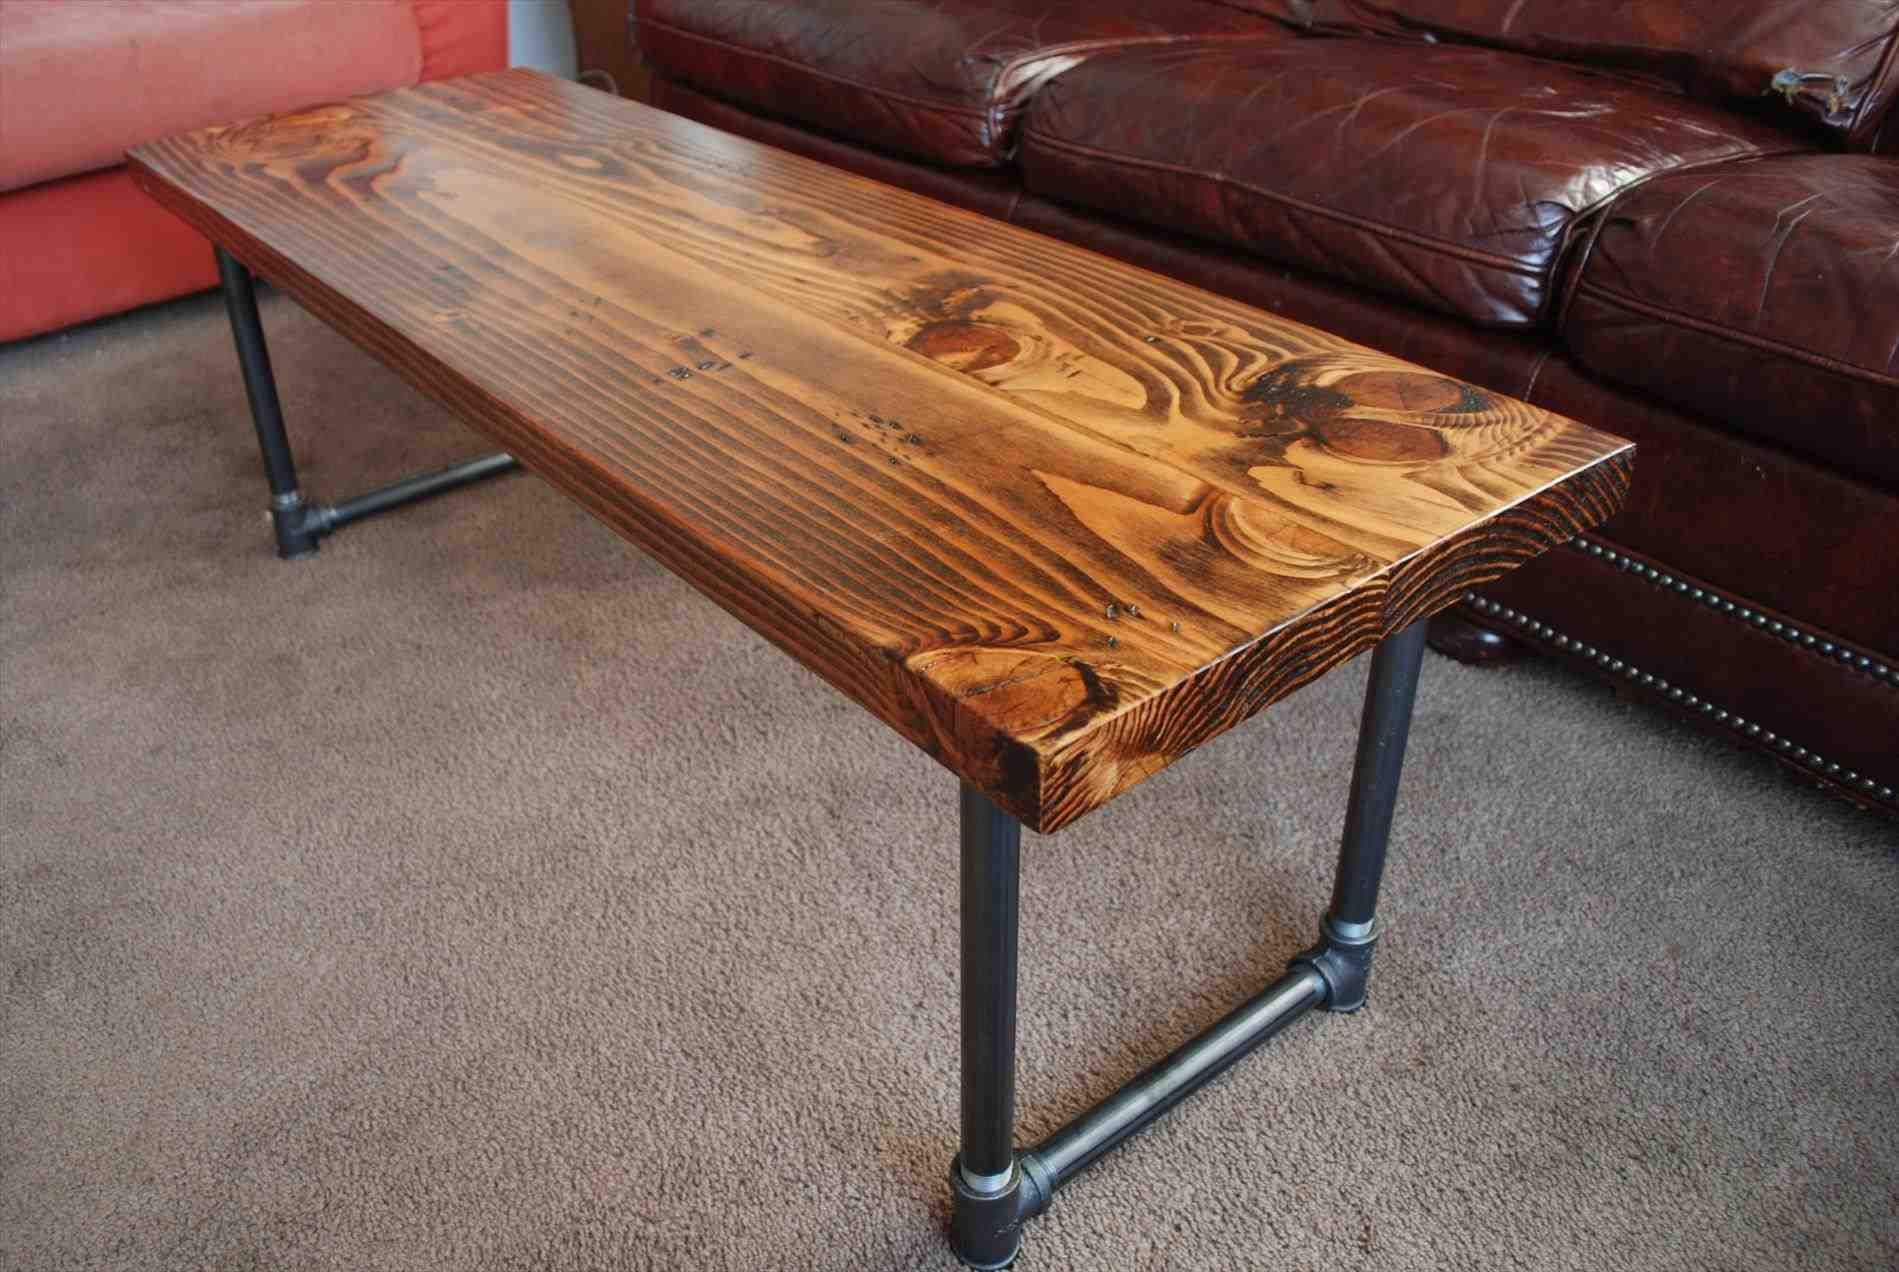 Related Image Iron Coffee Table Industrial Table Legs Coffee